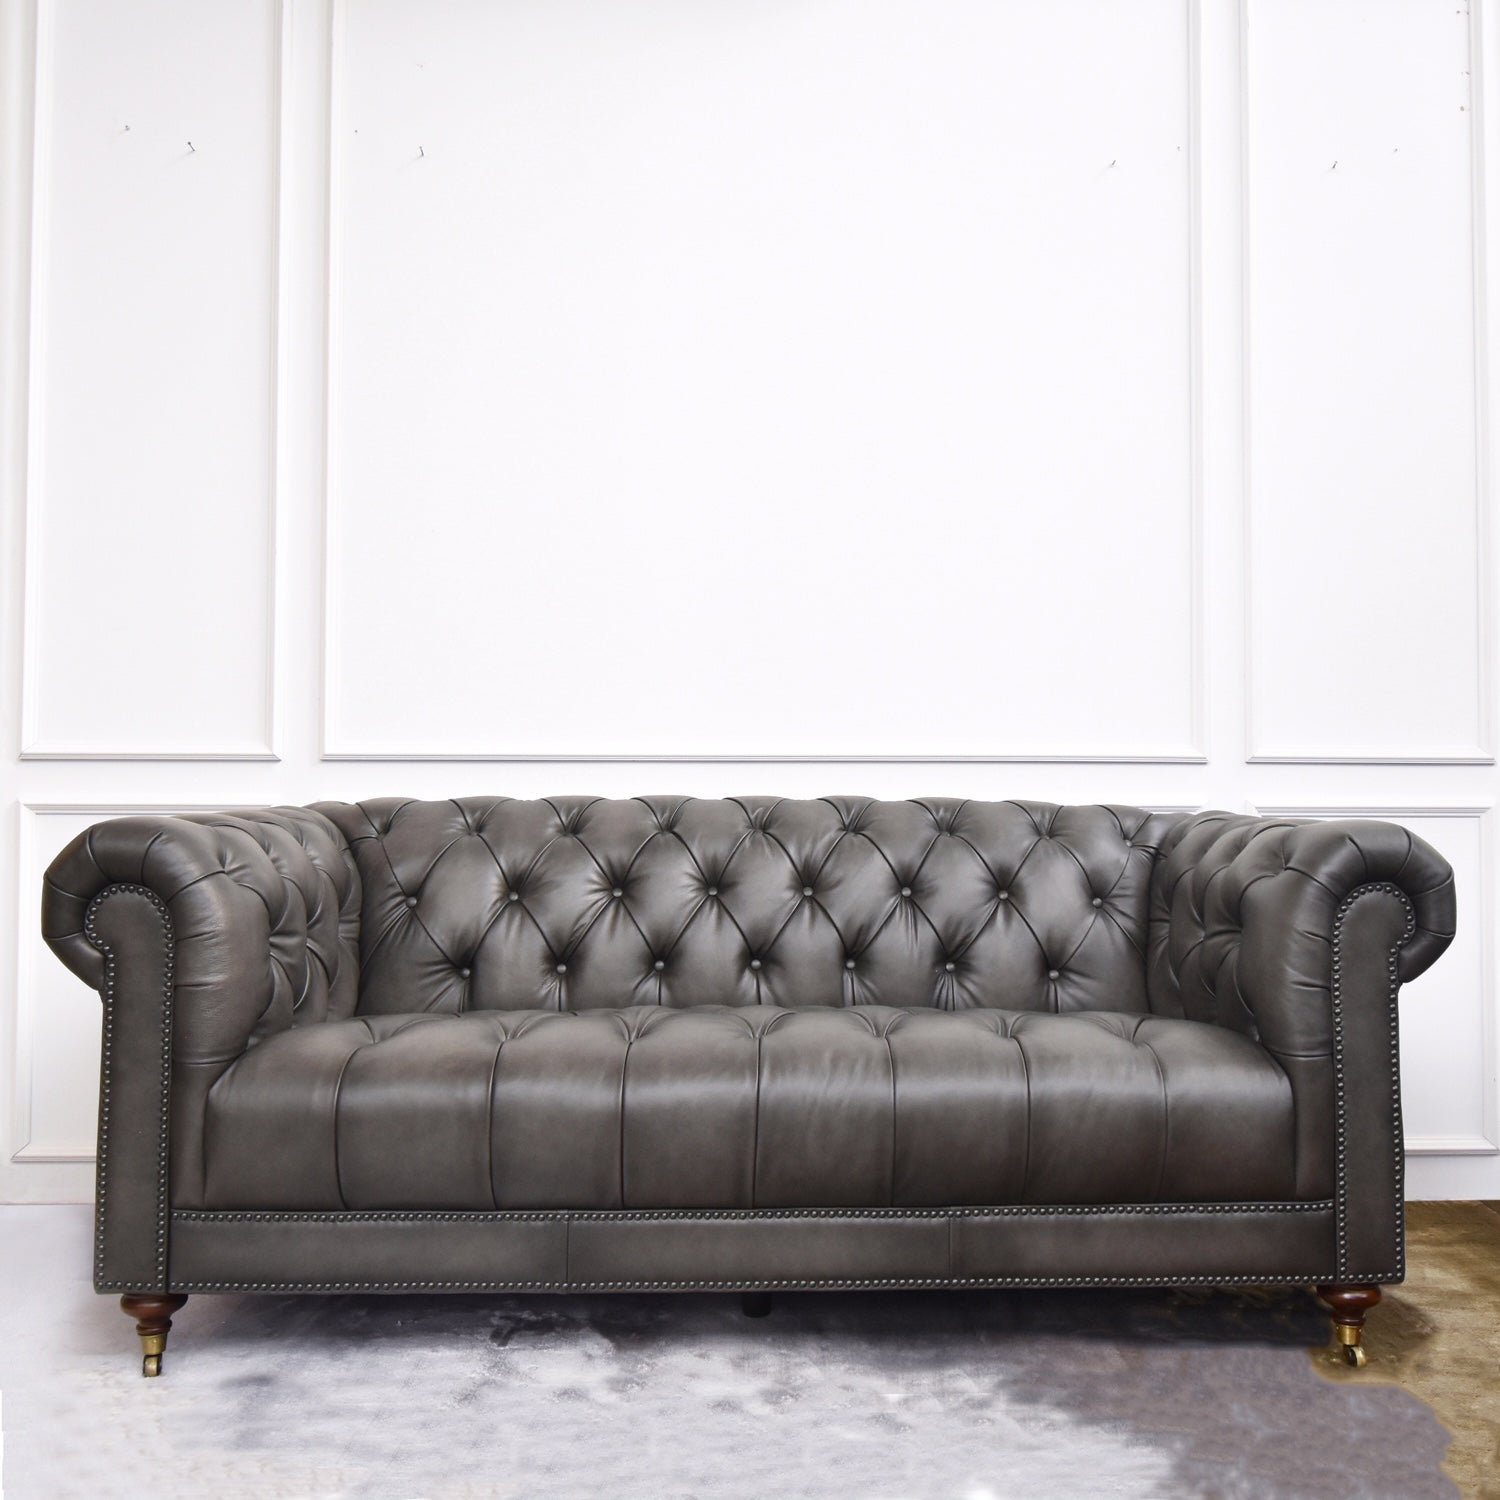 Yorkshire Leather Chesterfield Sofa 3 Seater Finn Avenue Finn